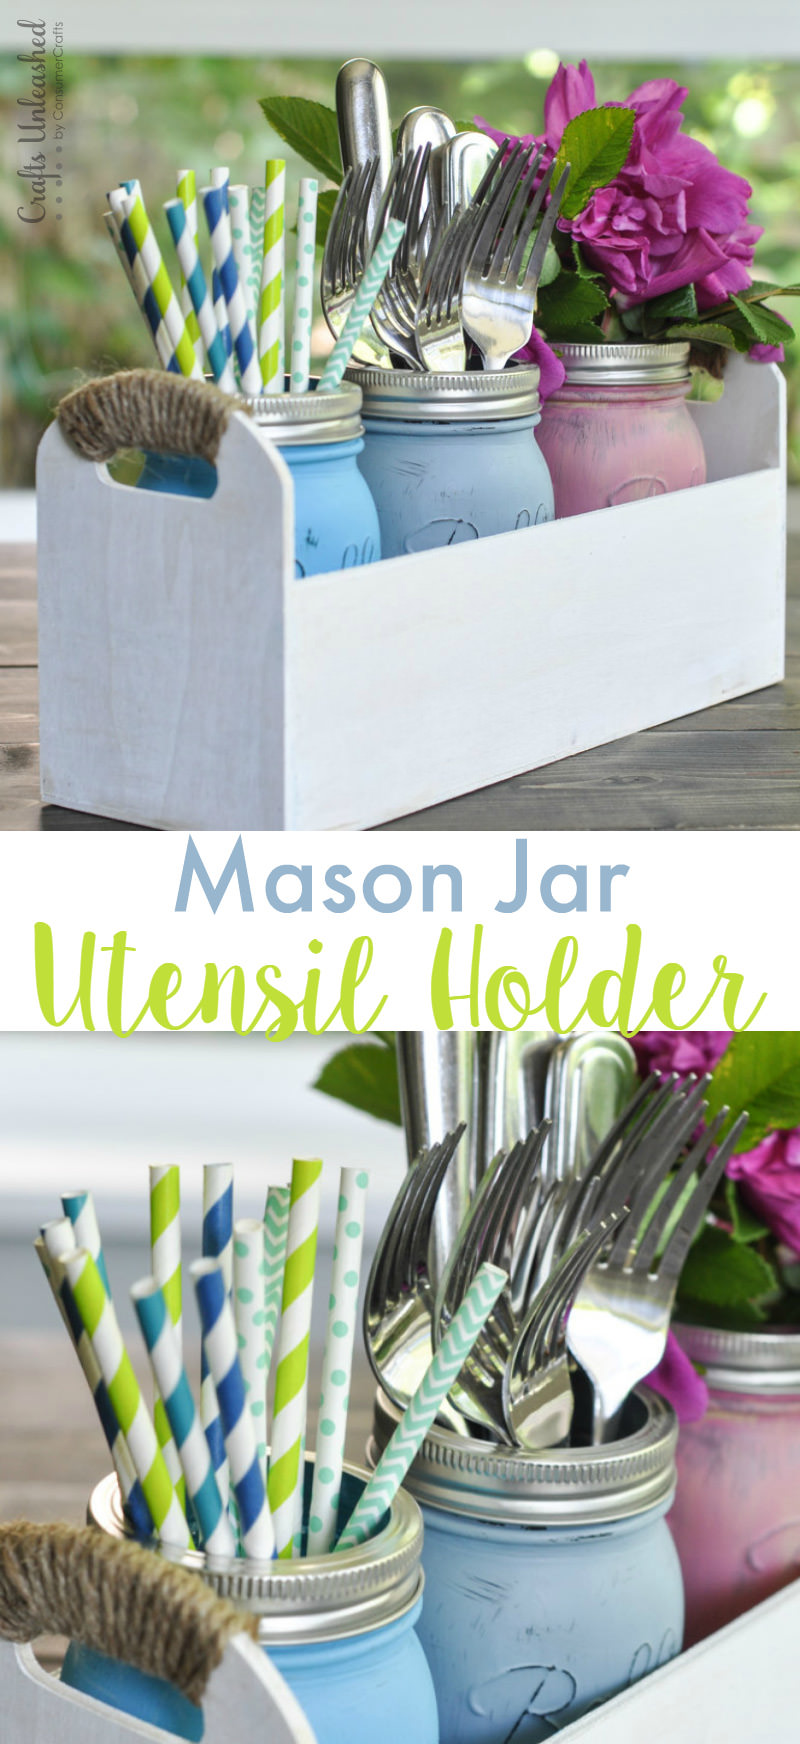 DIY Mason Jar Utensil Caddy Tutorial